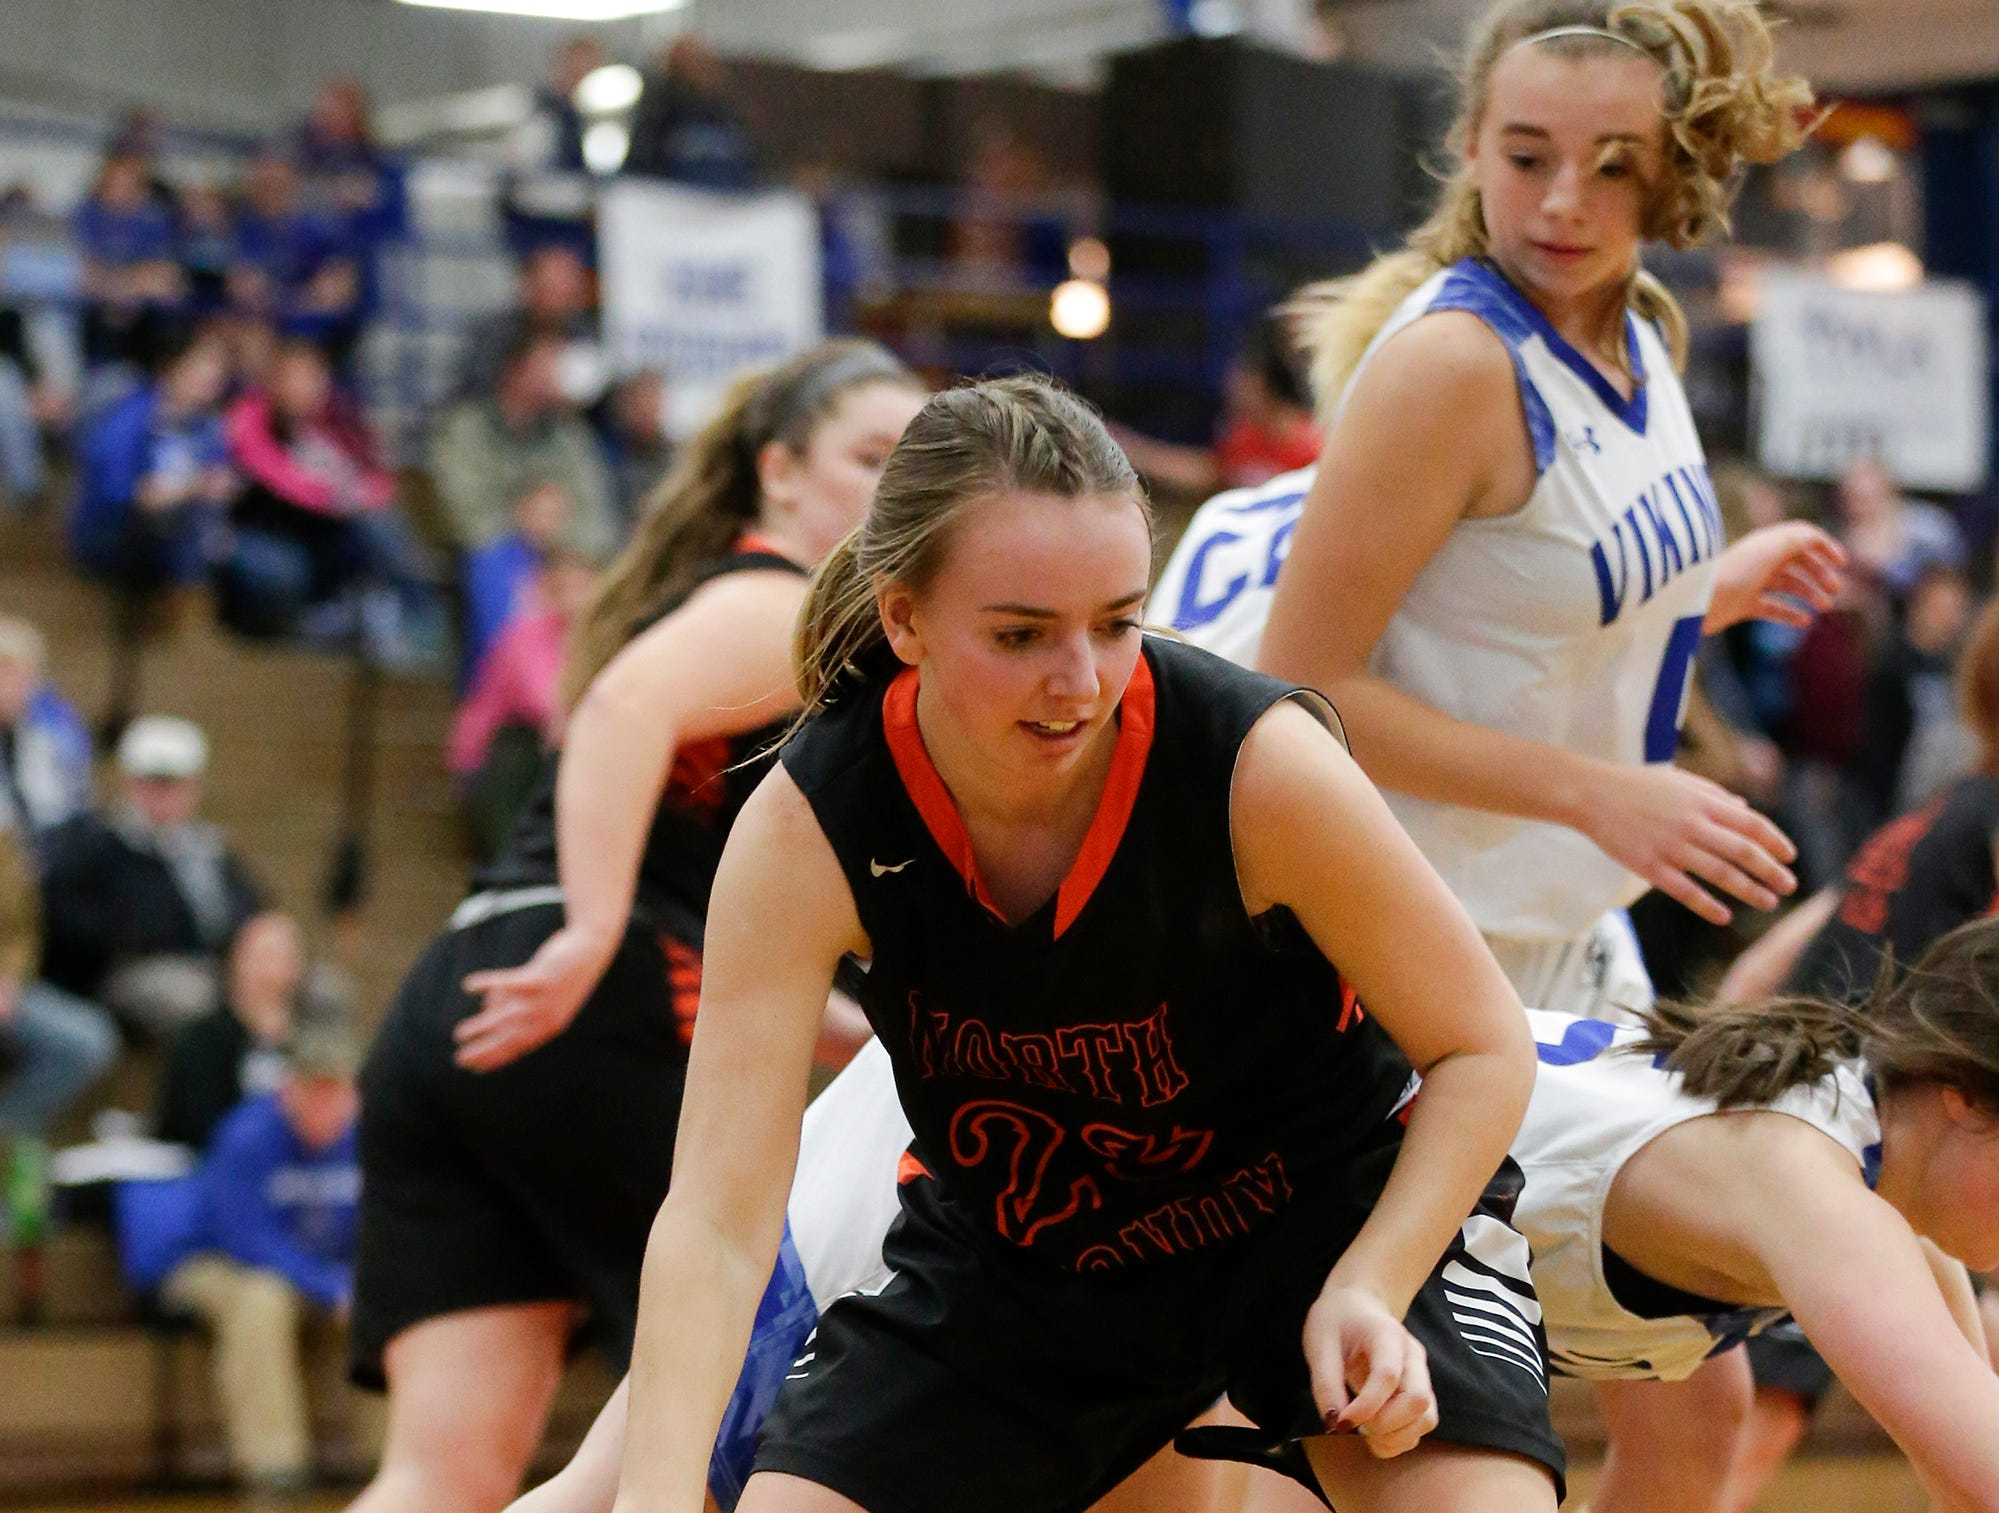 North Fond du Lac High School girls basketball's Jordyn Stattbacher comes down with this rebound against Winnebago Lutheran Academy January 10, 2019 during their game in Fond du Lac. Doug Raflik/USA TODAY NETWORK-Wisconsin